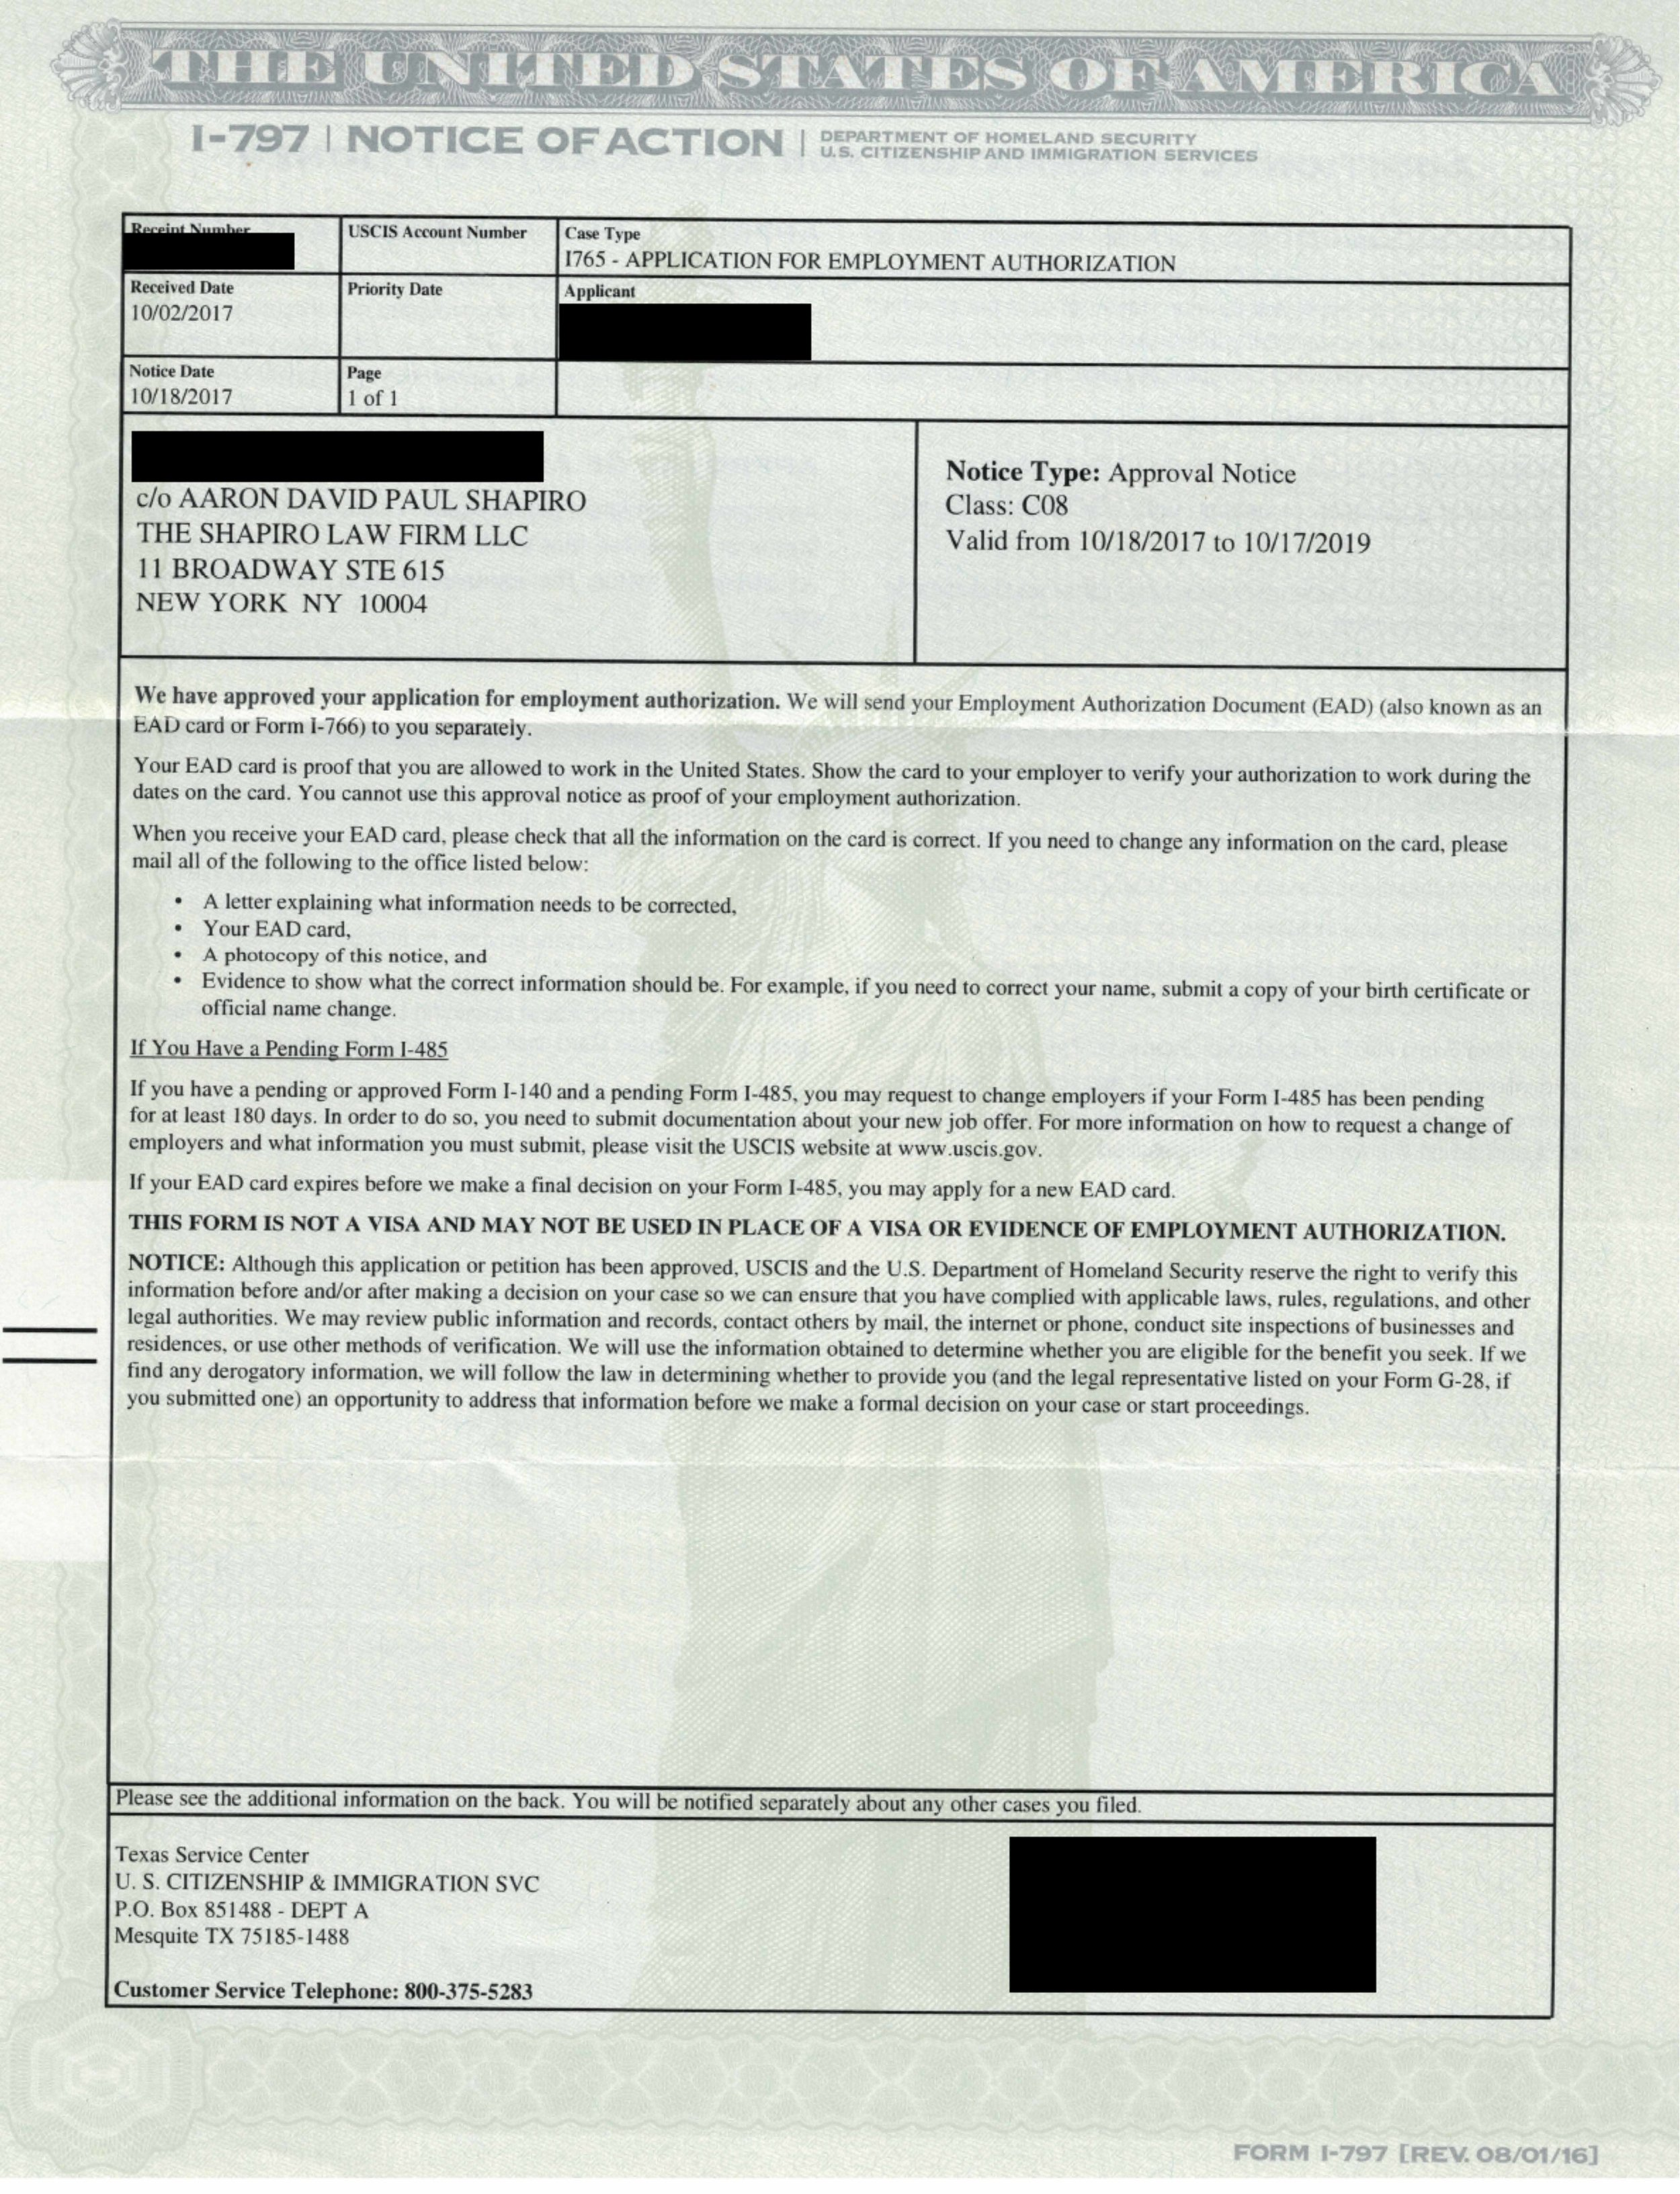 I-797, I-765- Applicant for Employment Authorization, Approval Notice